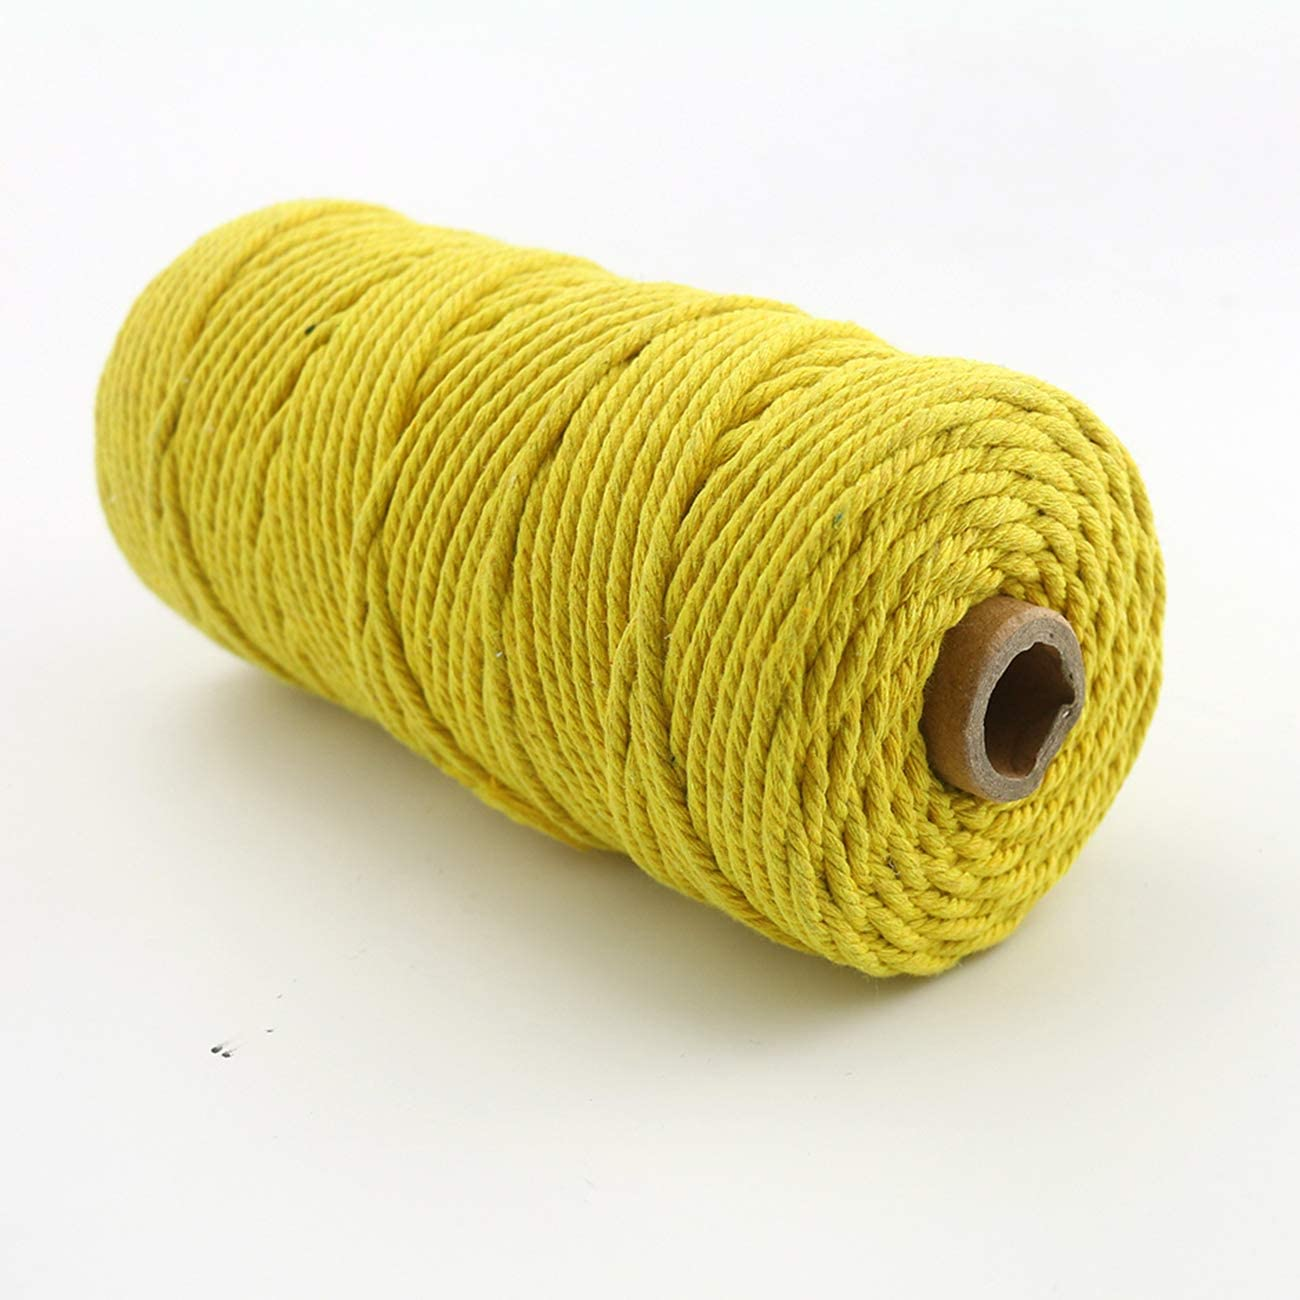 About 110 yd Best for Plant Hanger Wall Hanging Craft Making and DIY Black TinaWood 3mm Natural Virgin Cotton Cord // Twine String//Macrame Cord//Soft Undyed Natural Color Rope